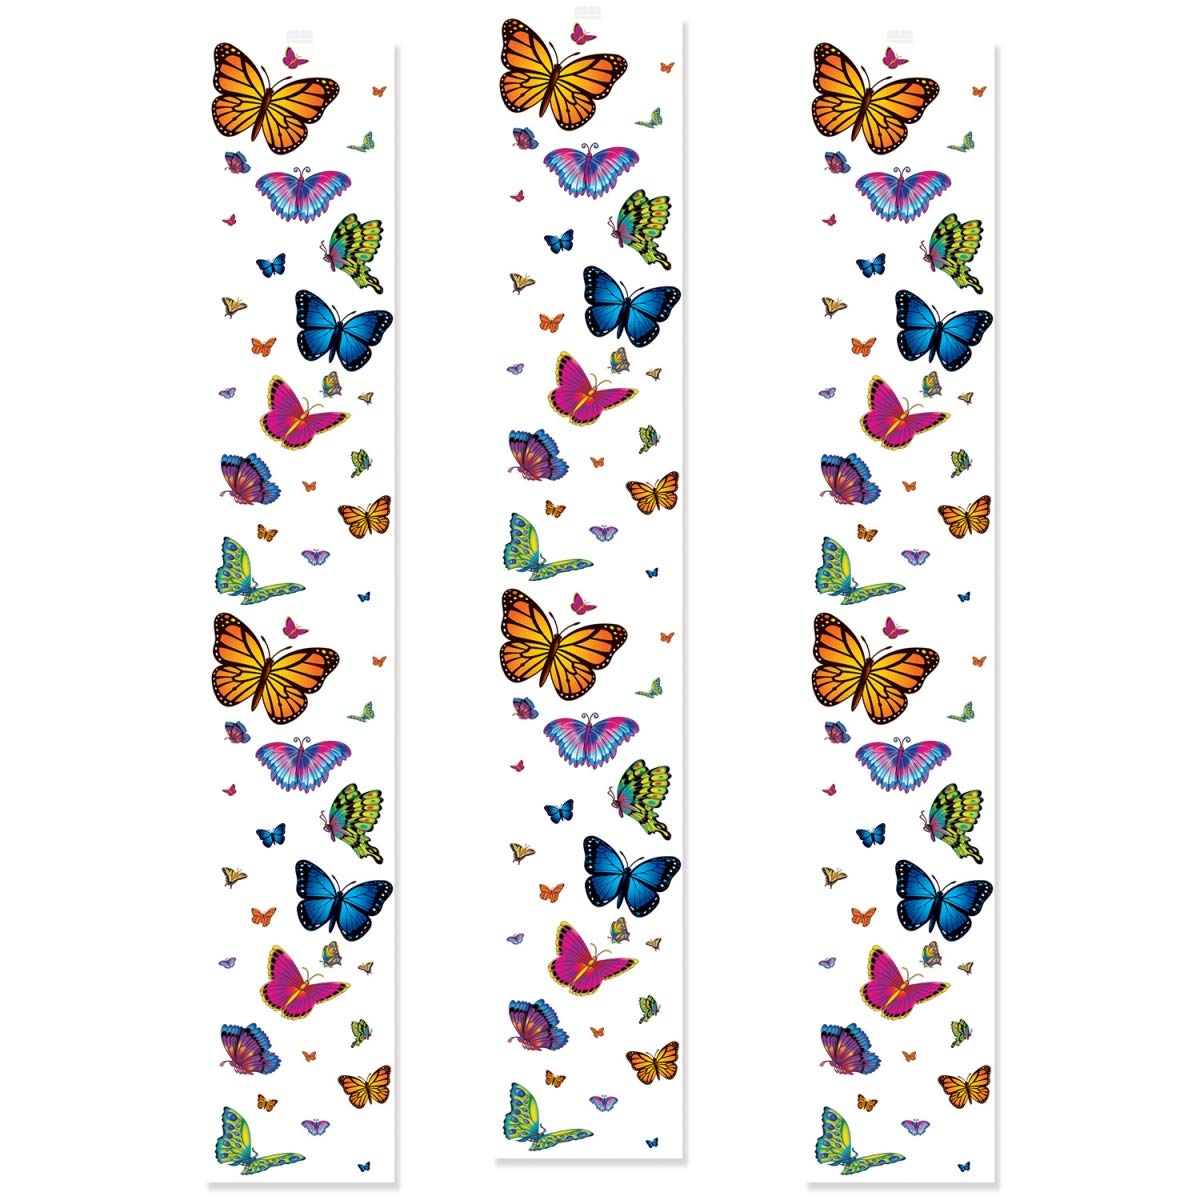 Beistle 54817 12 in. x 6 ft. Butterfly Party Panels - Pack of 12 by Beistle (Image #1)